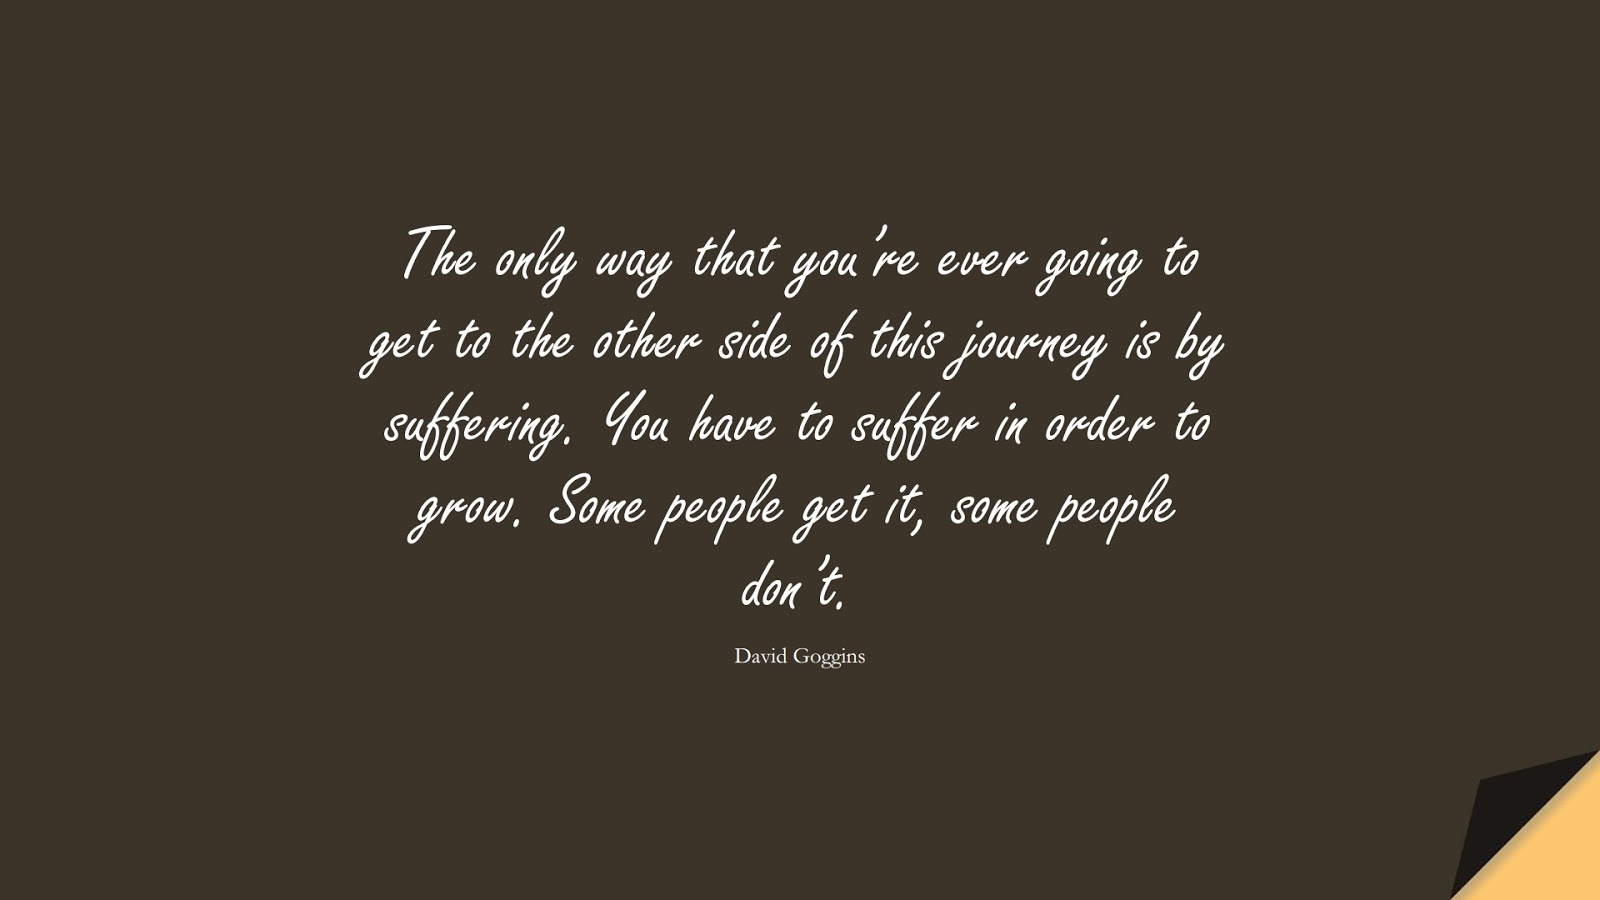 The only way that you're ever going to get to the other side of this journey is by suffering. You have to suffer in order to grow. Some people get it, some people don't. (David Goggins);  #EncouragingQuotes